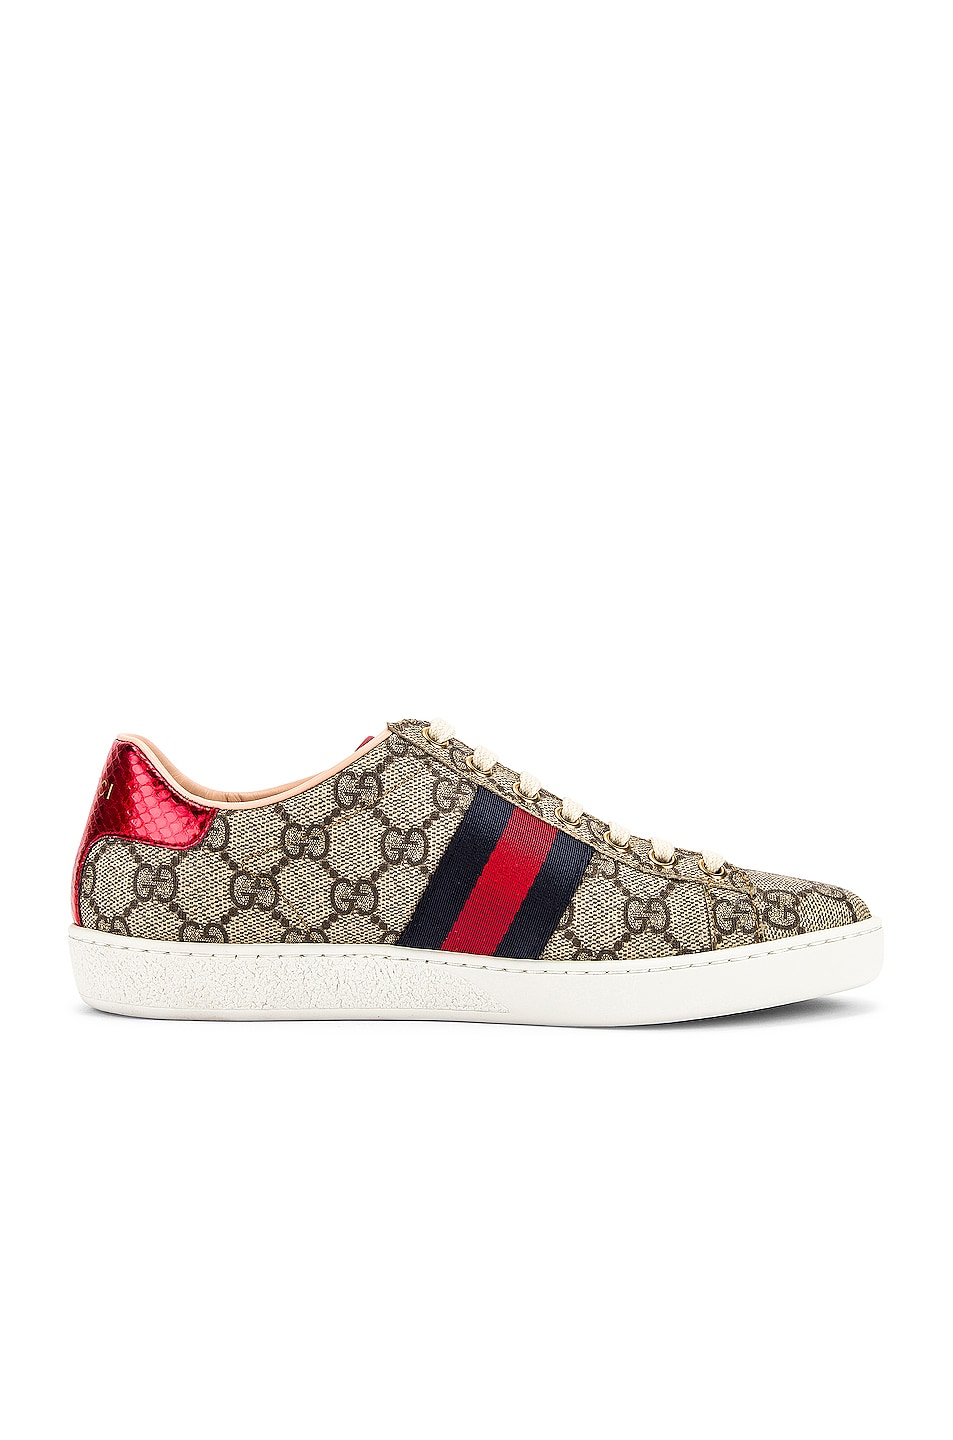 Image 7 of Gucci New Ace GG Sneakers in Beige Ebony & Red